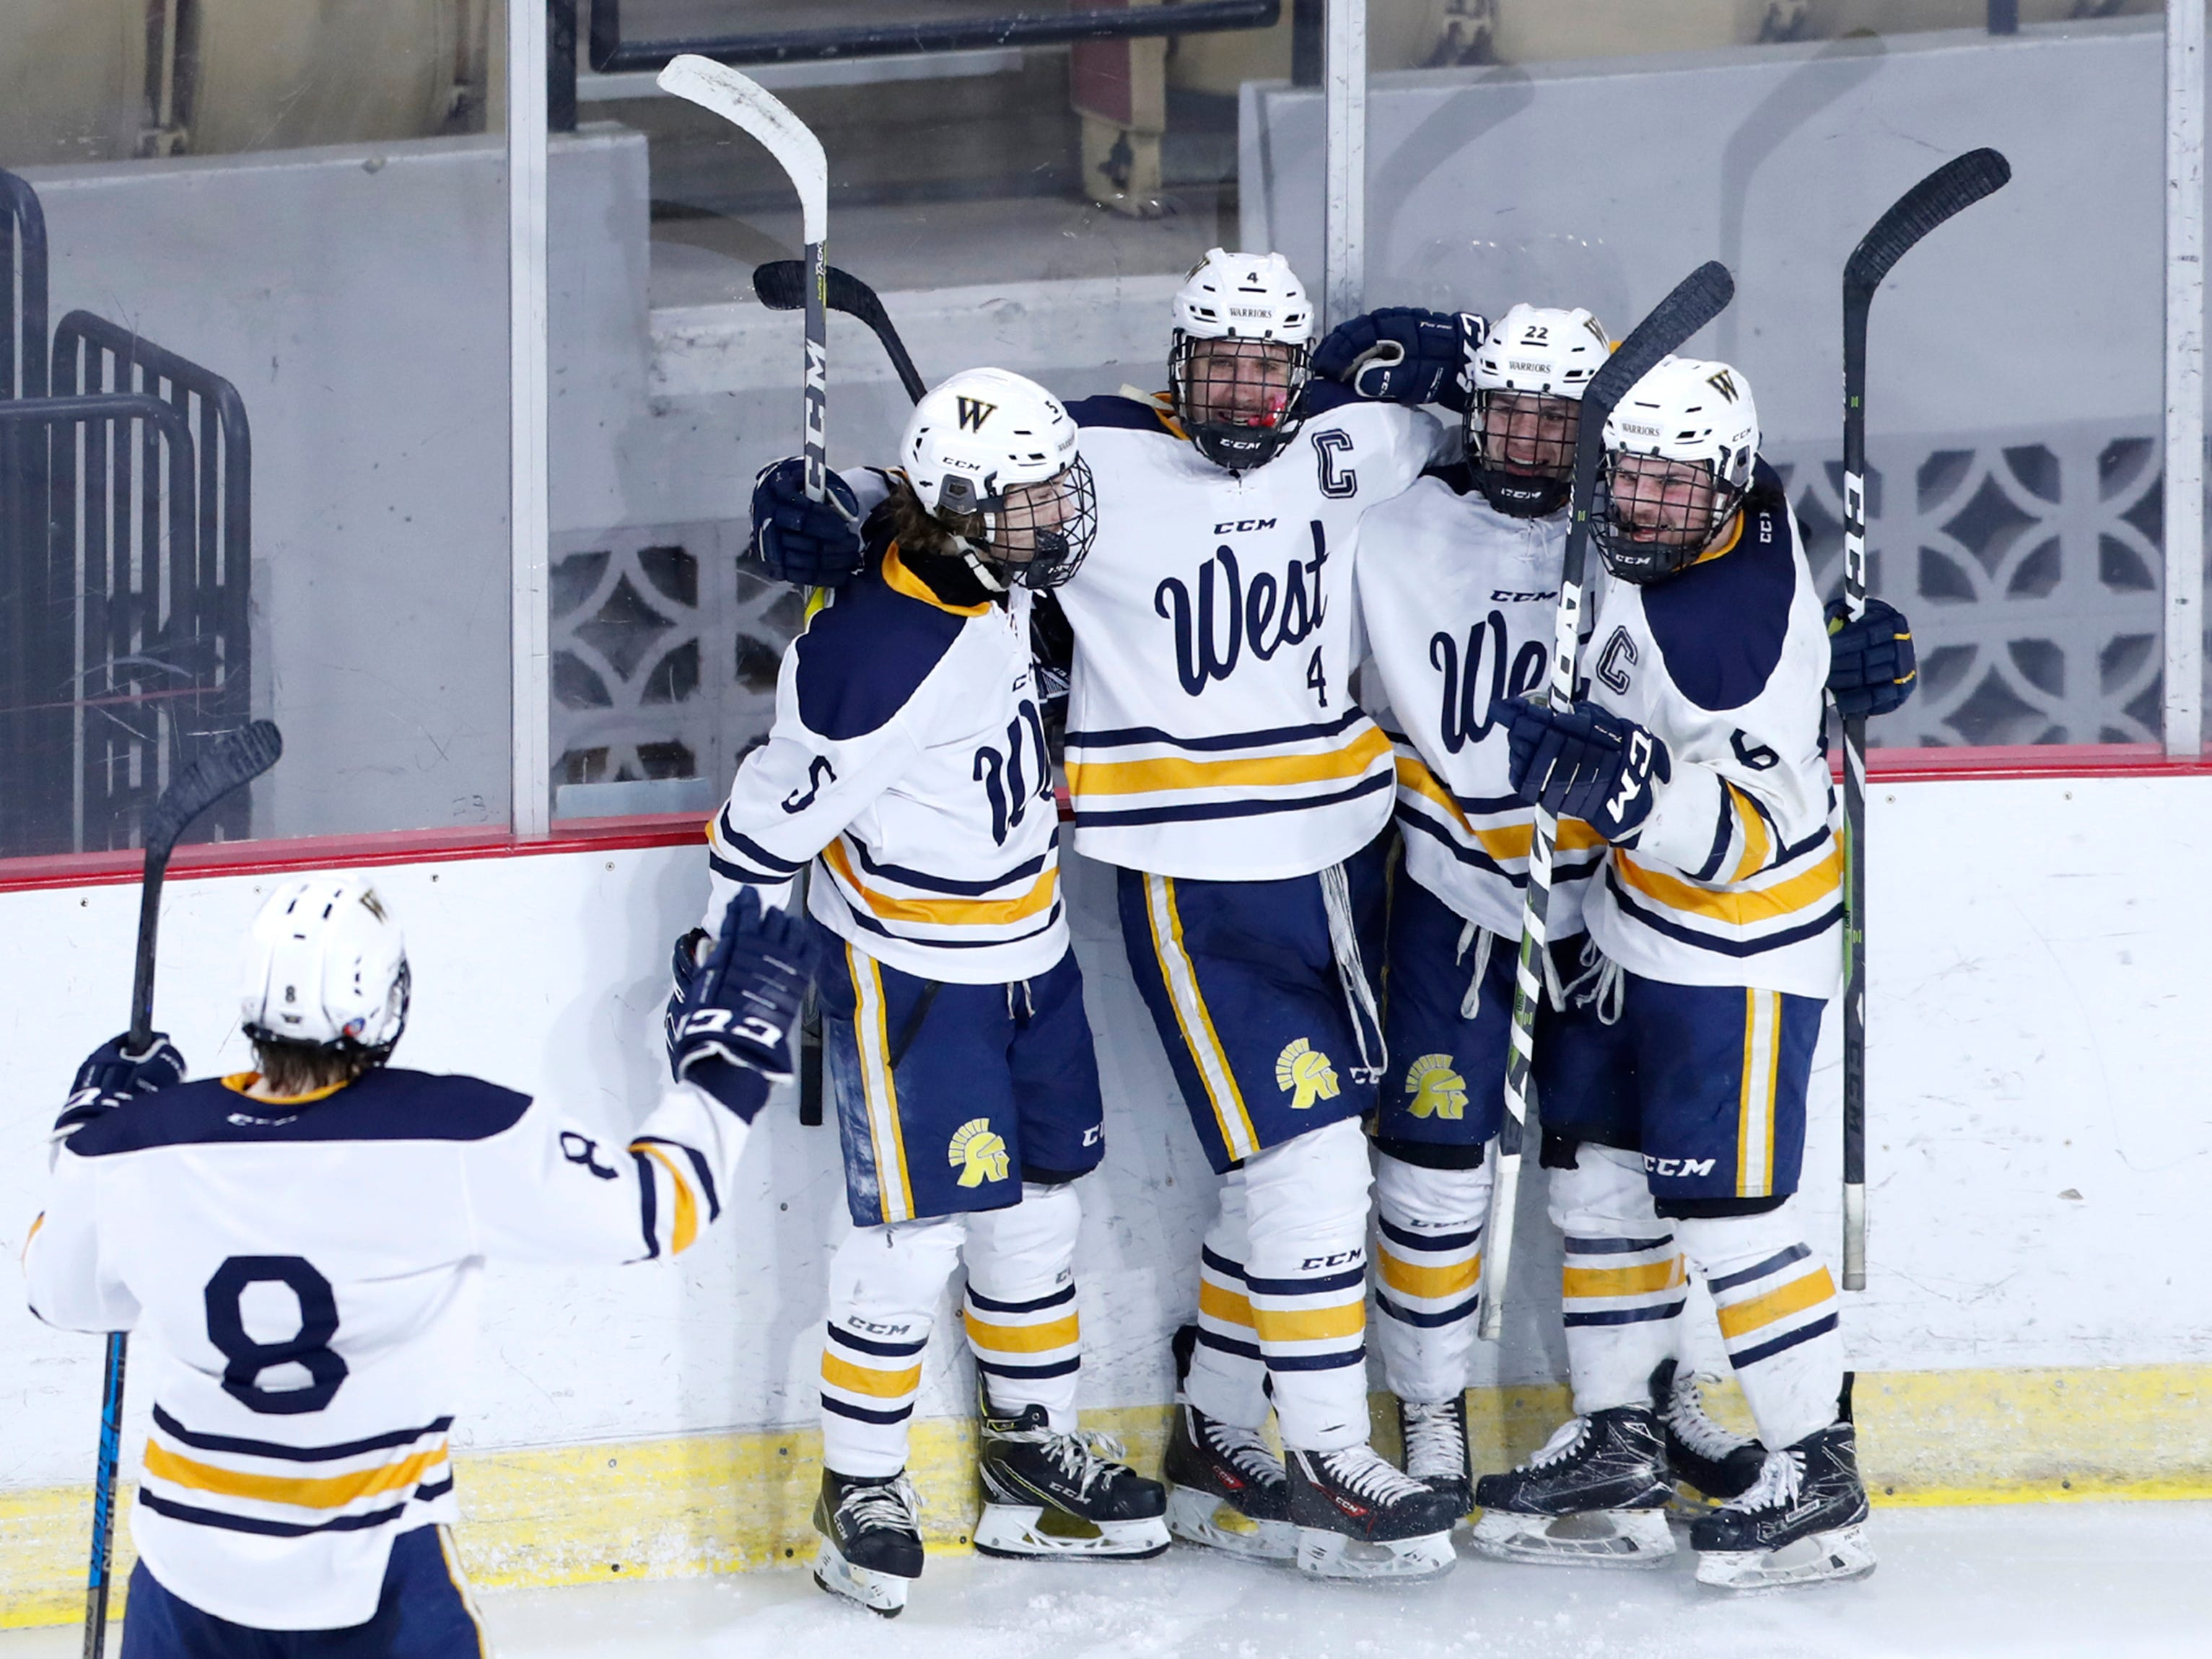 Wausau West's Connor Healy goes to celebrate with teammates after a goal scored by Sam Techel against Waukesha North Co-op during the WIAA State Hockey Tournament quarterfinals Thursday, Feb. 28, 2019, at Veterans Memorial Coliseum in Madison, Wis.